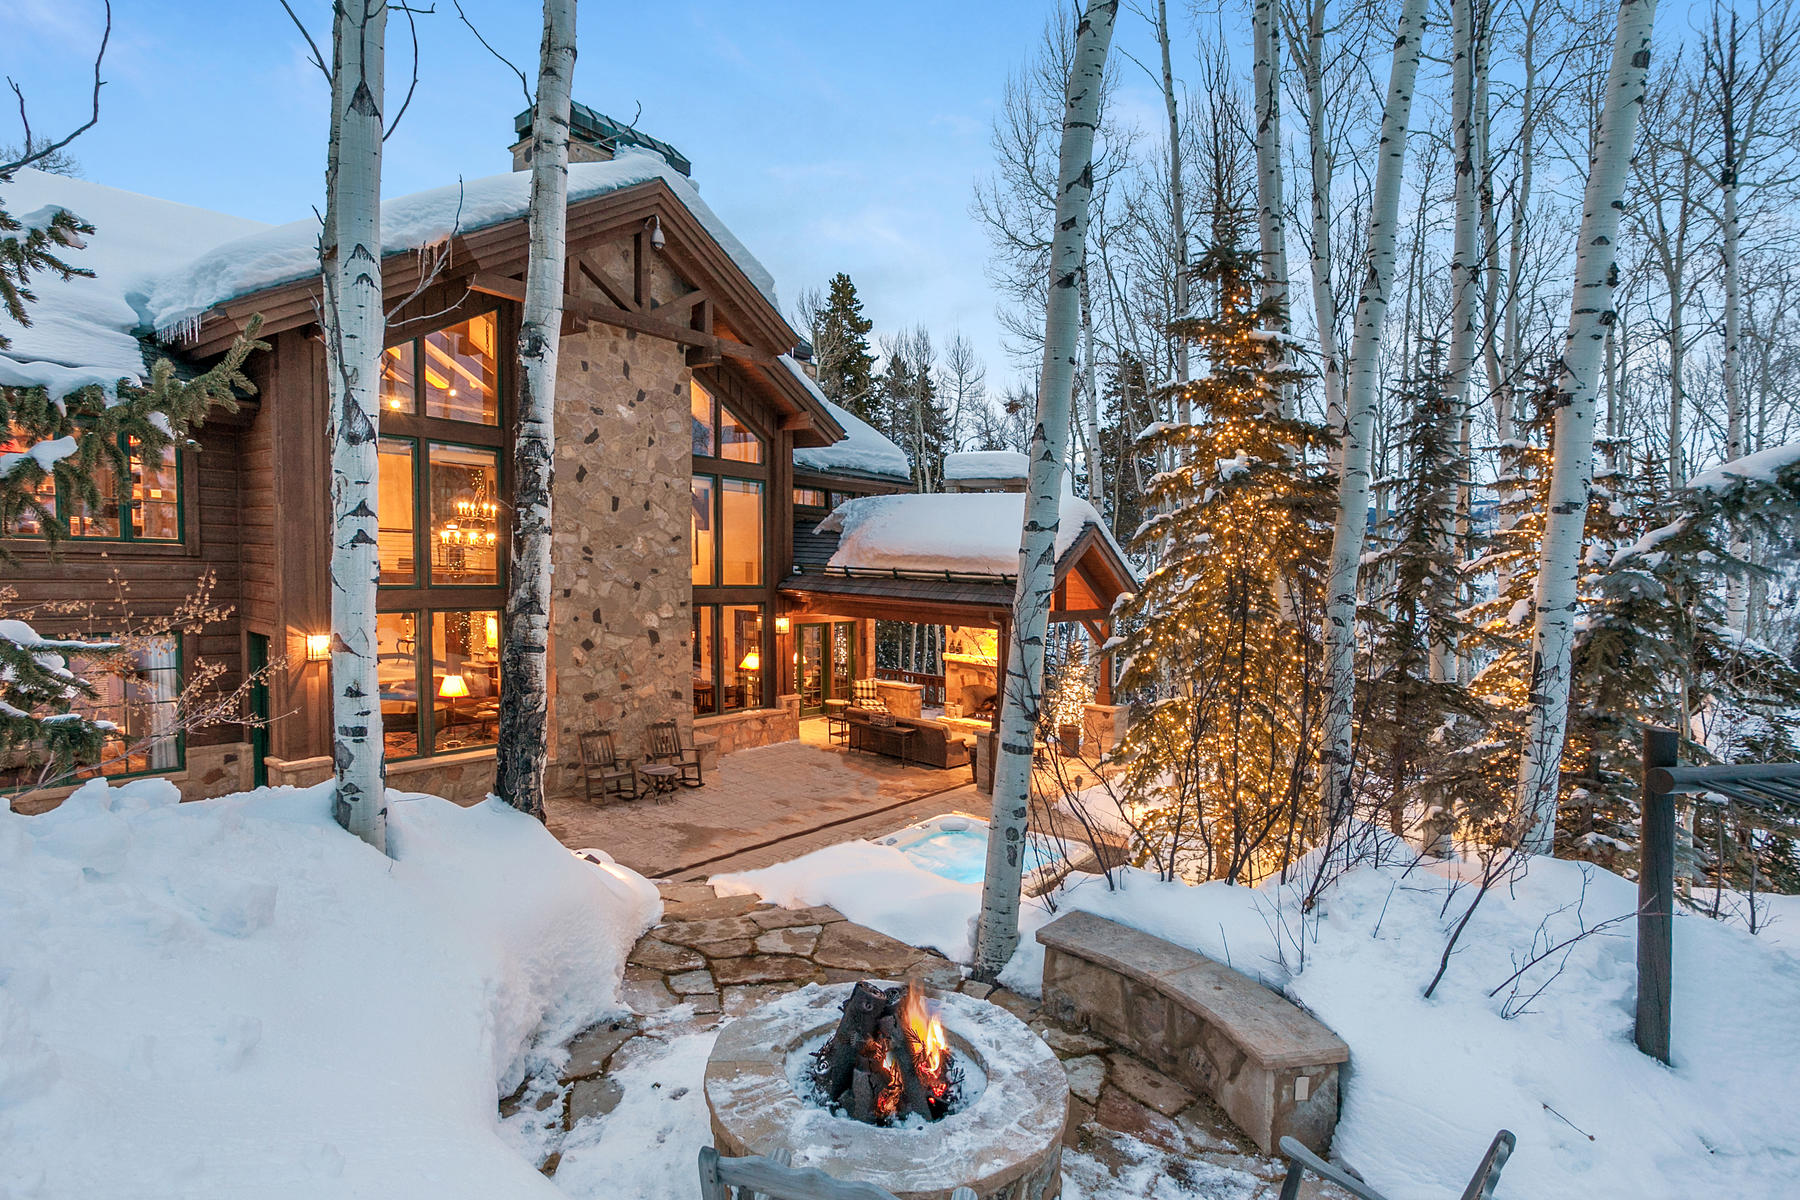 Single Family Home for Active at Strawberry Park Ski Lodge 373 Strawberry Park Beaver Creek, 81620 United States